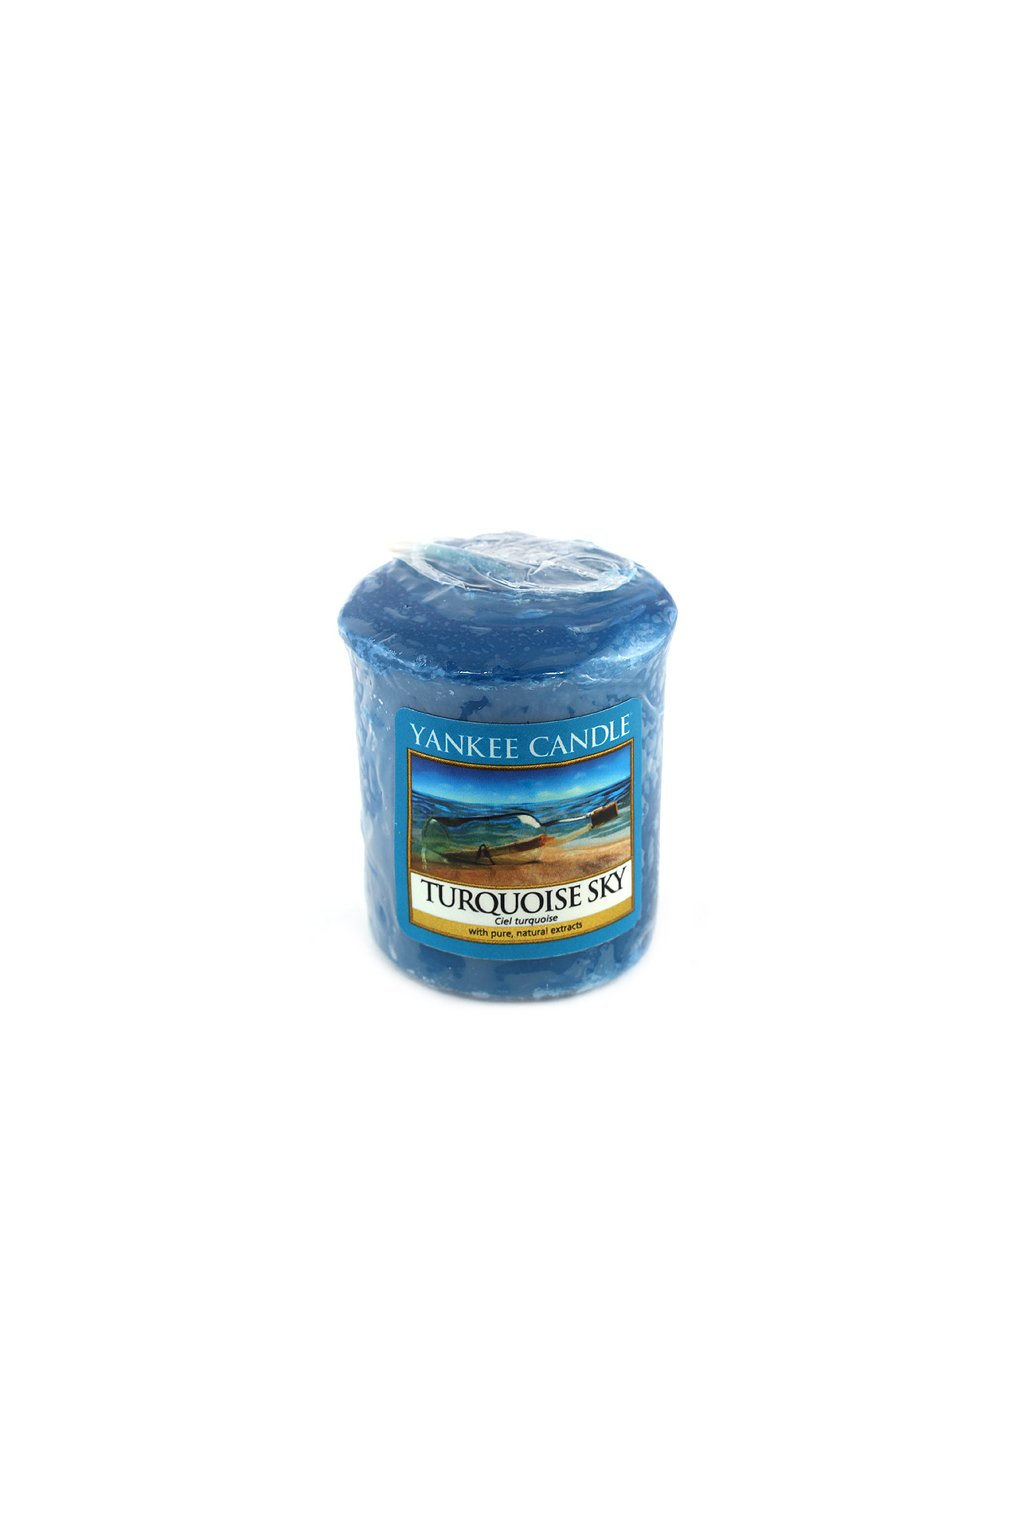 Yankee Candle Turquoise Sky 49g